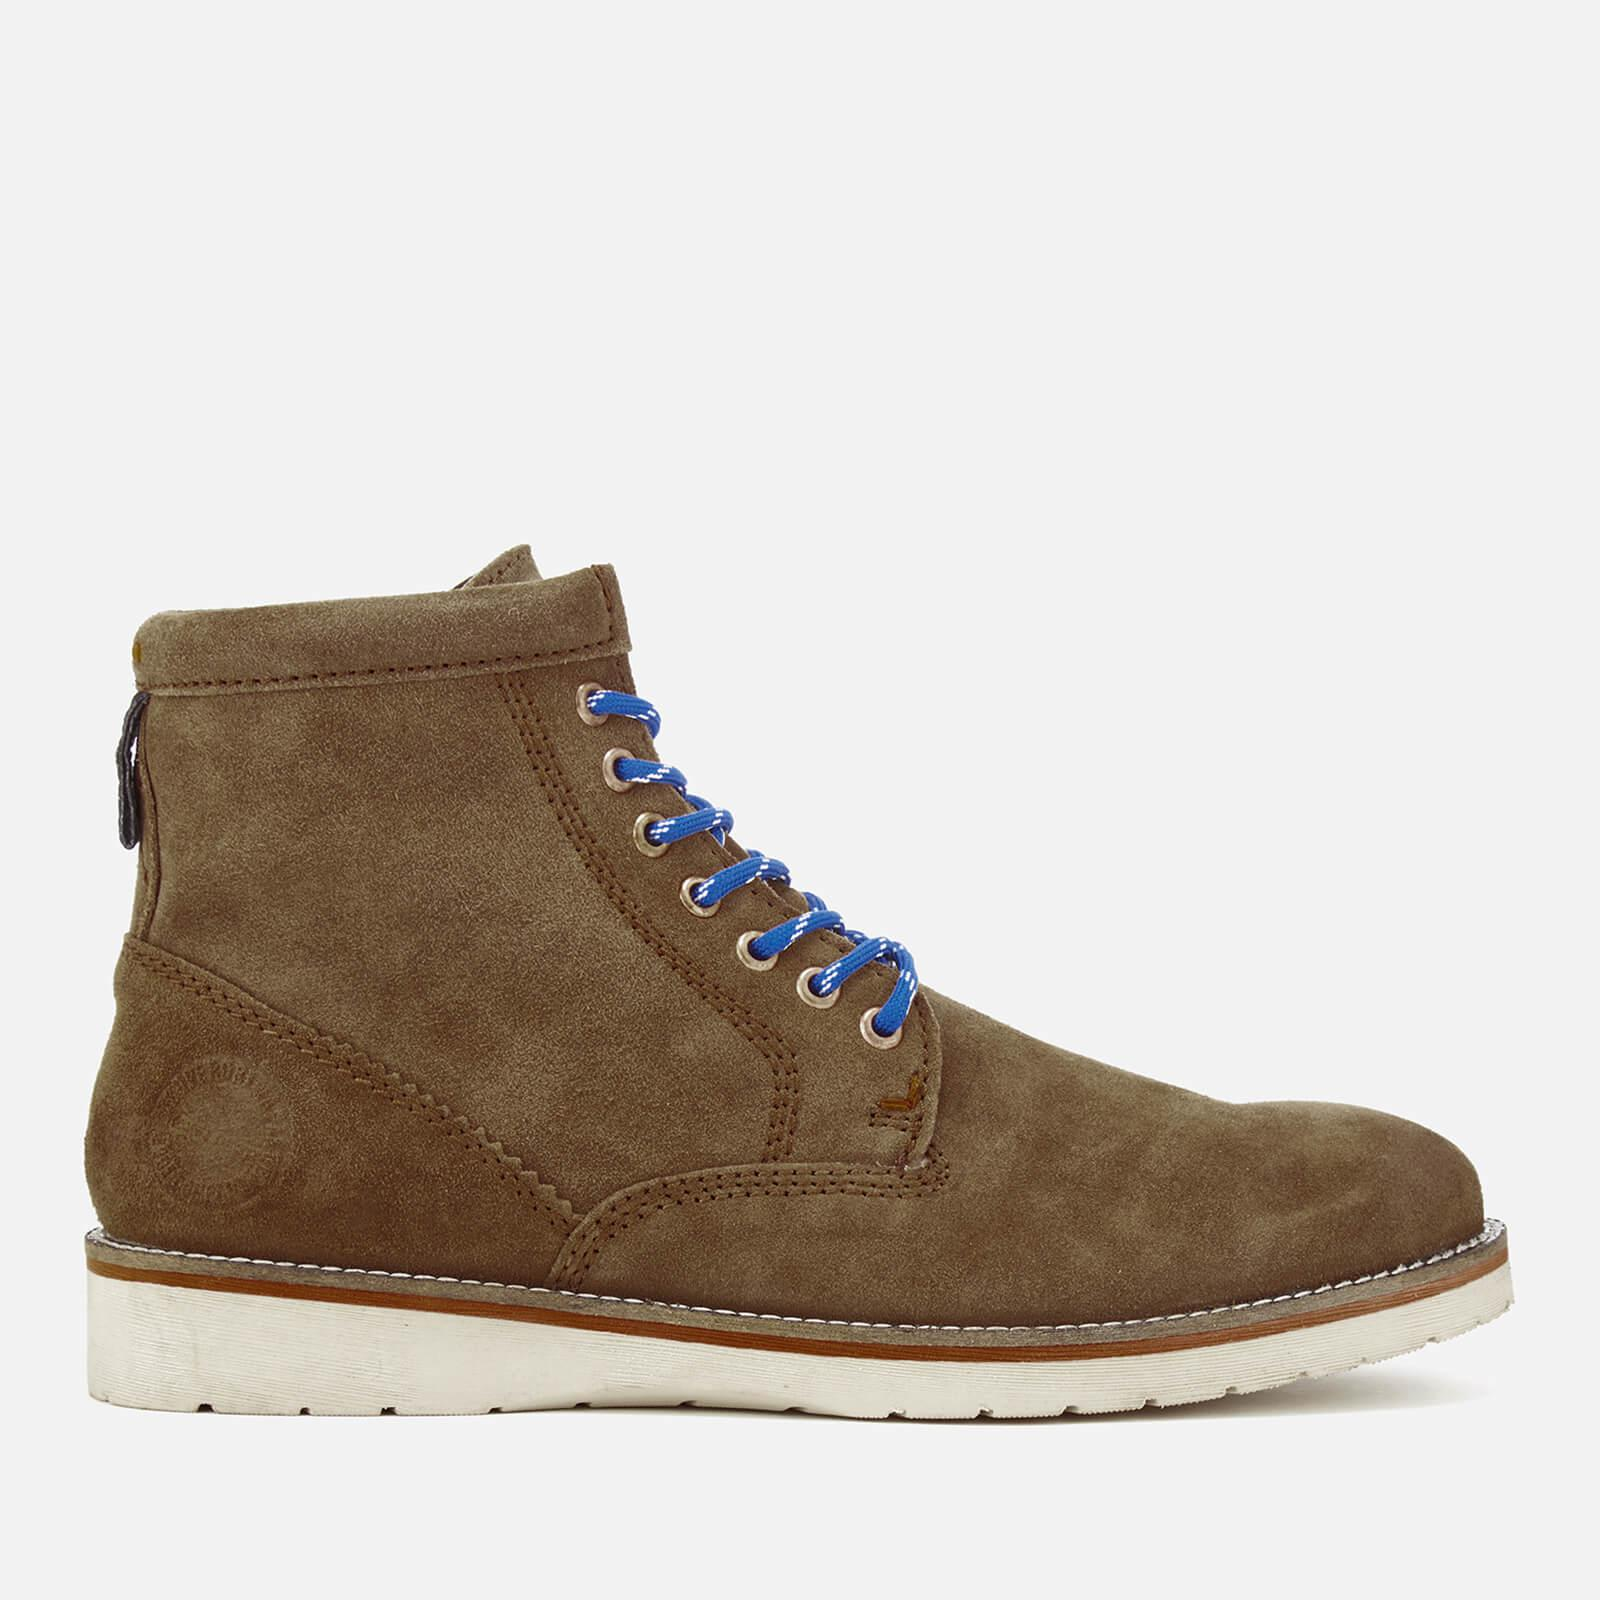 Lyst Superdry Men S Stirling Lace Up Boots In Brown For Men